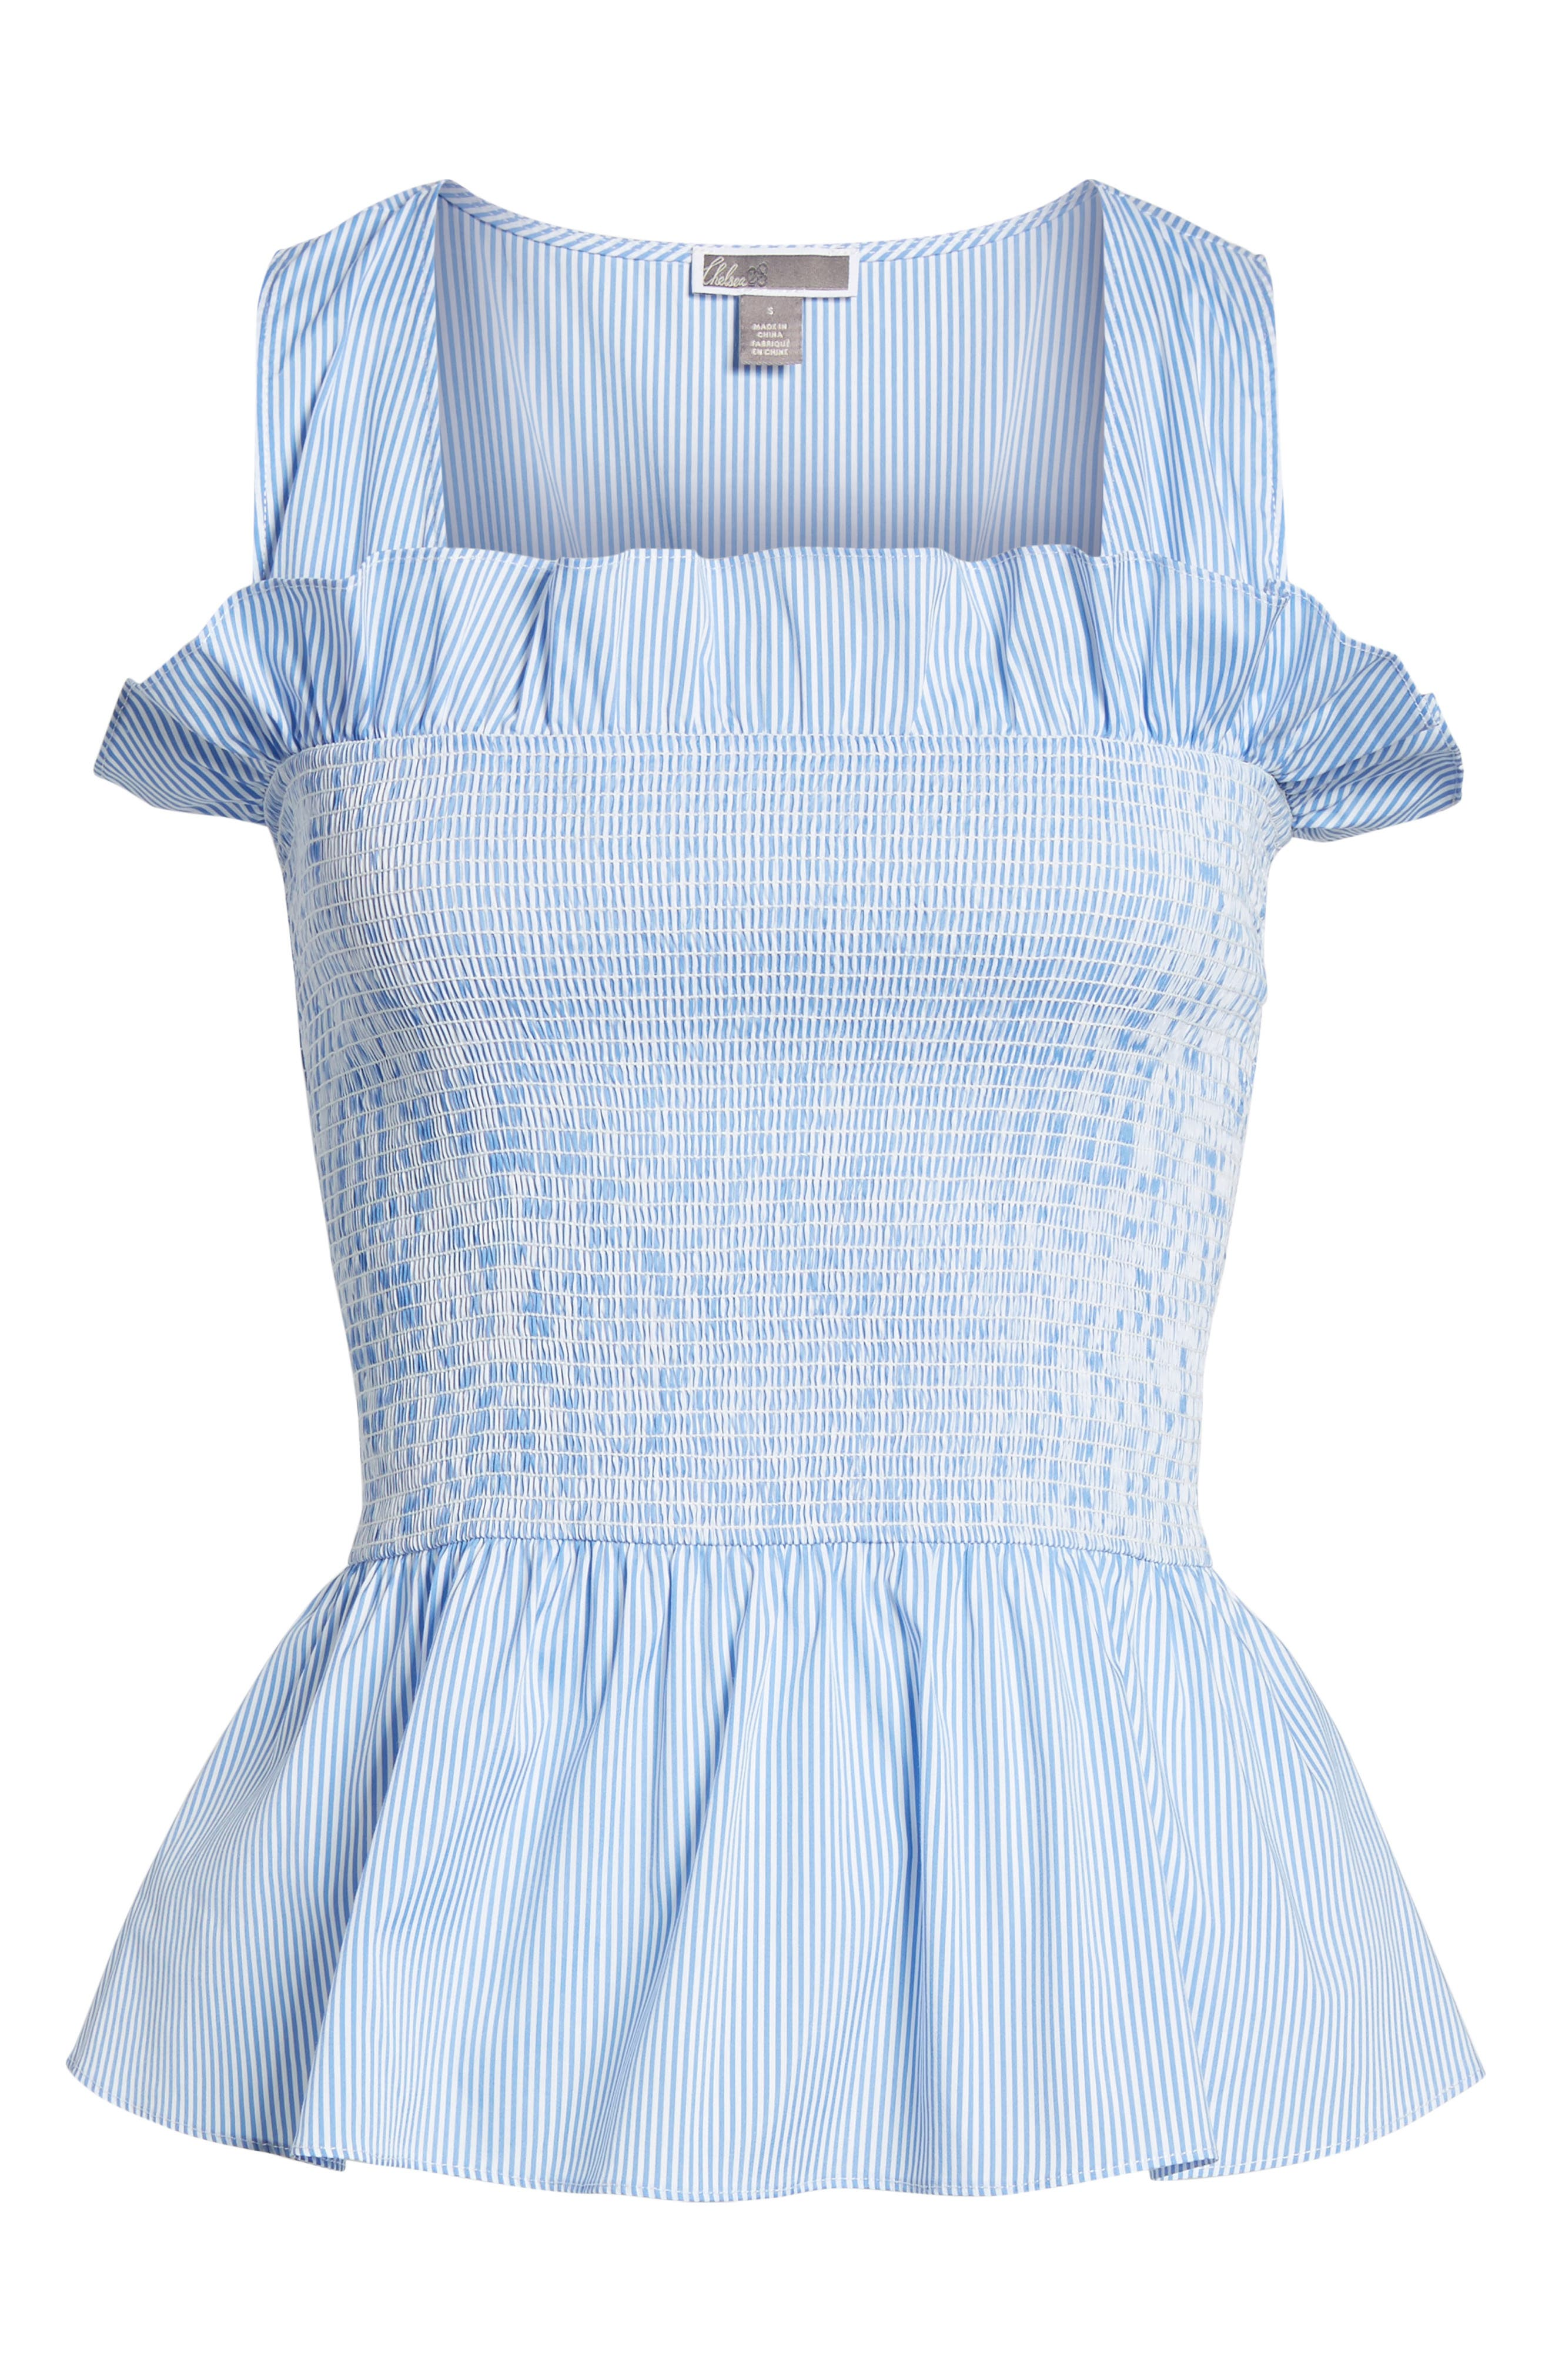 Smocked Bustier Top,                             Alternate thumbnail 6, color,                             Blue Stream Stripe